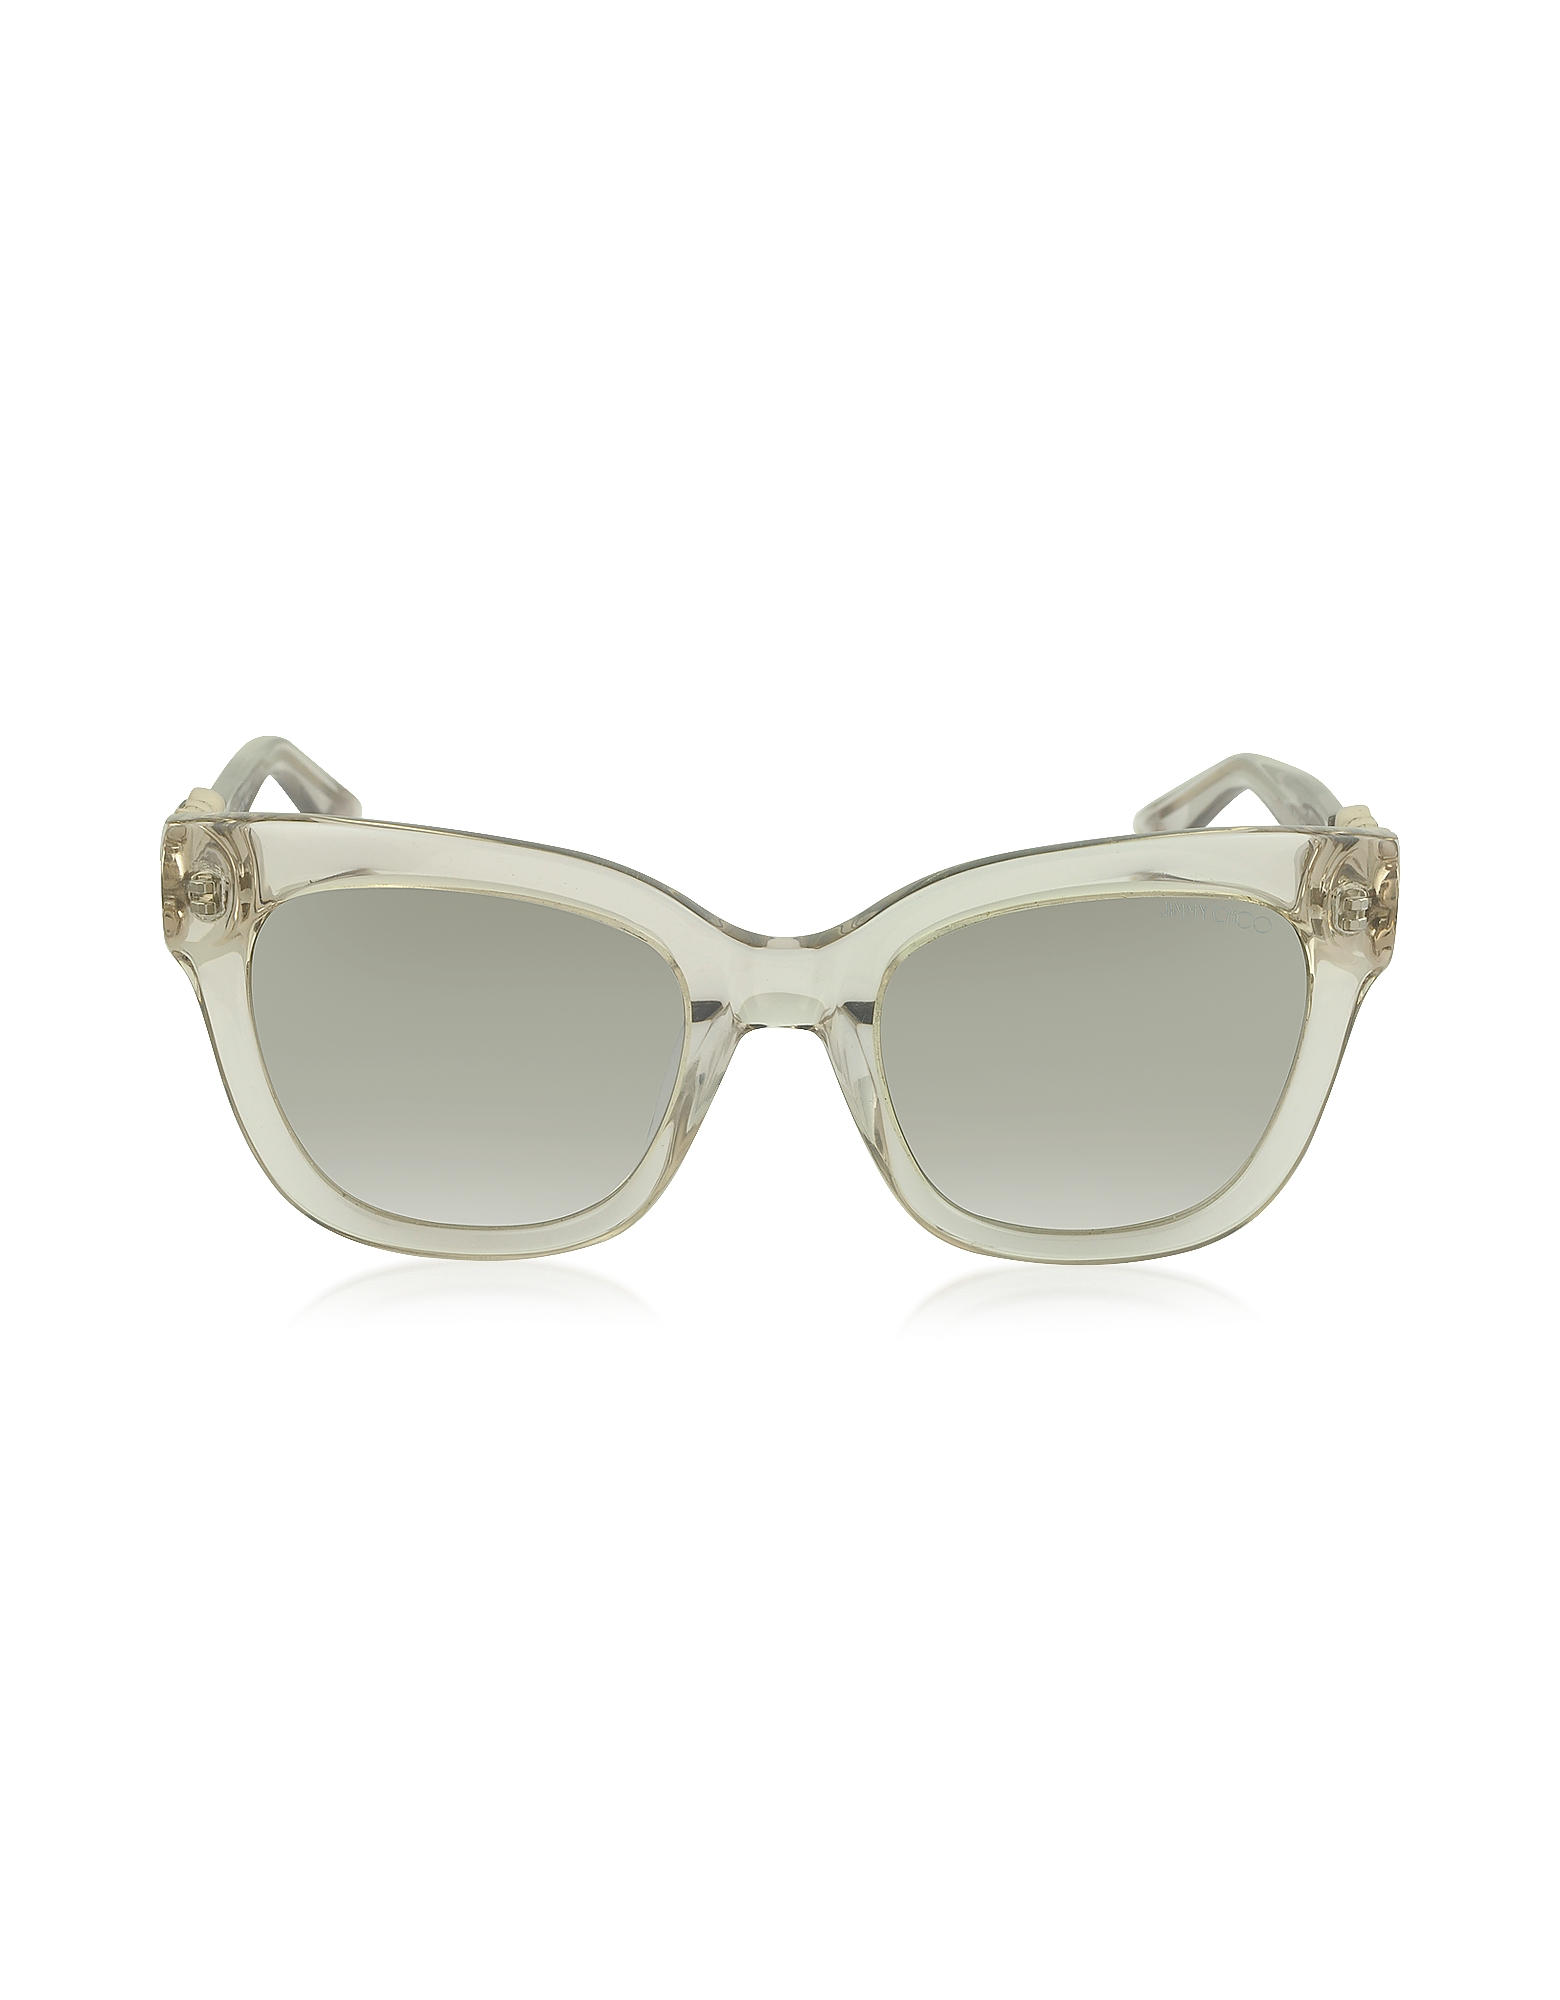 Jimmy Choo Designer Sunglasses, MAGGIE / S Acetate Women's Sunglasses